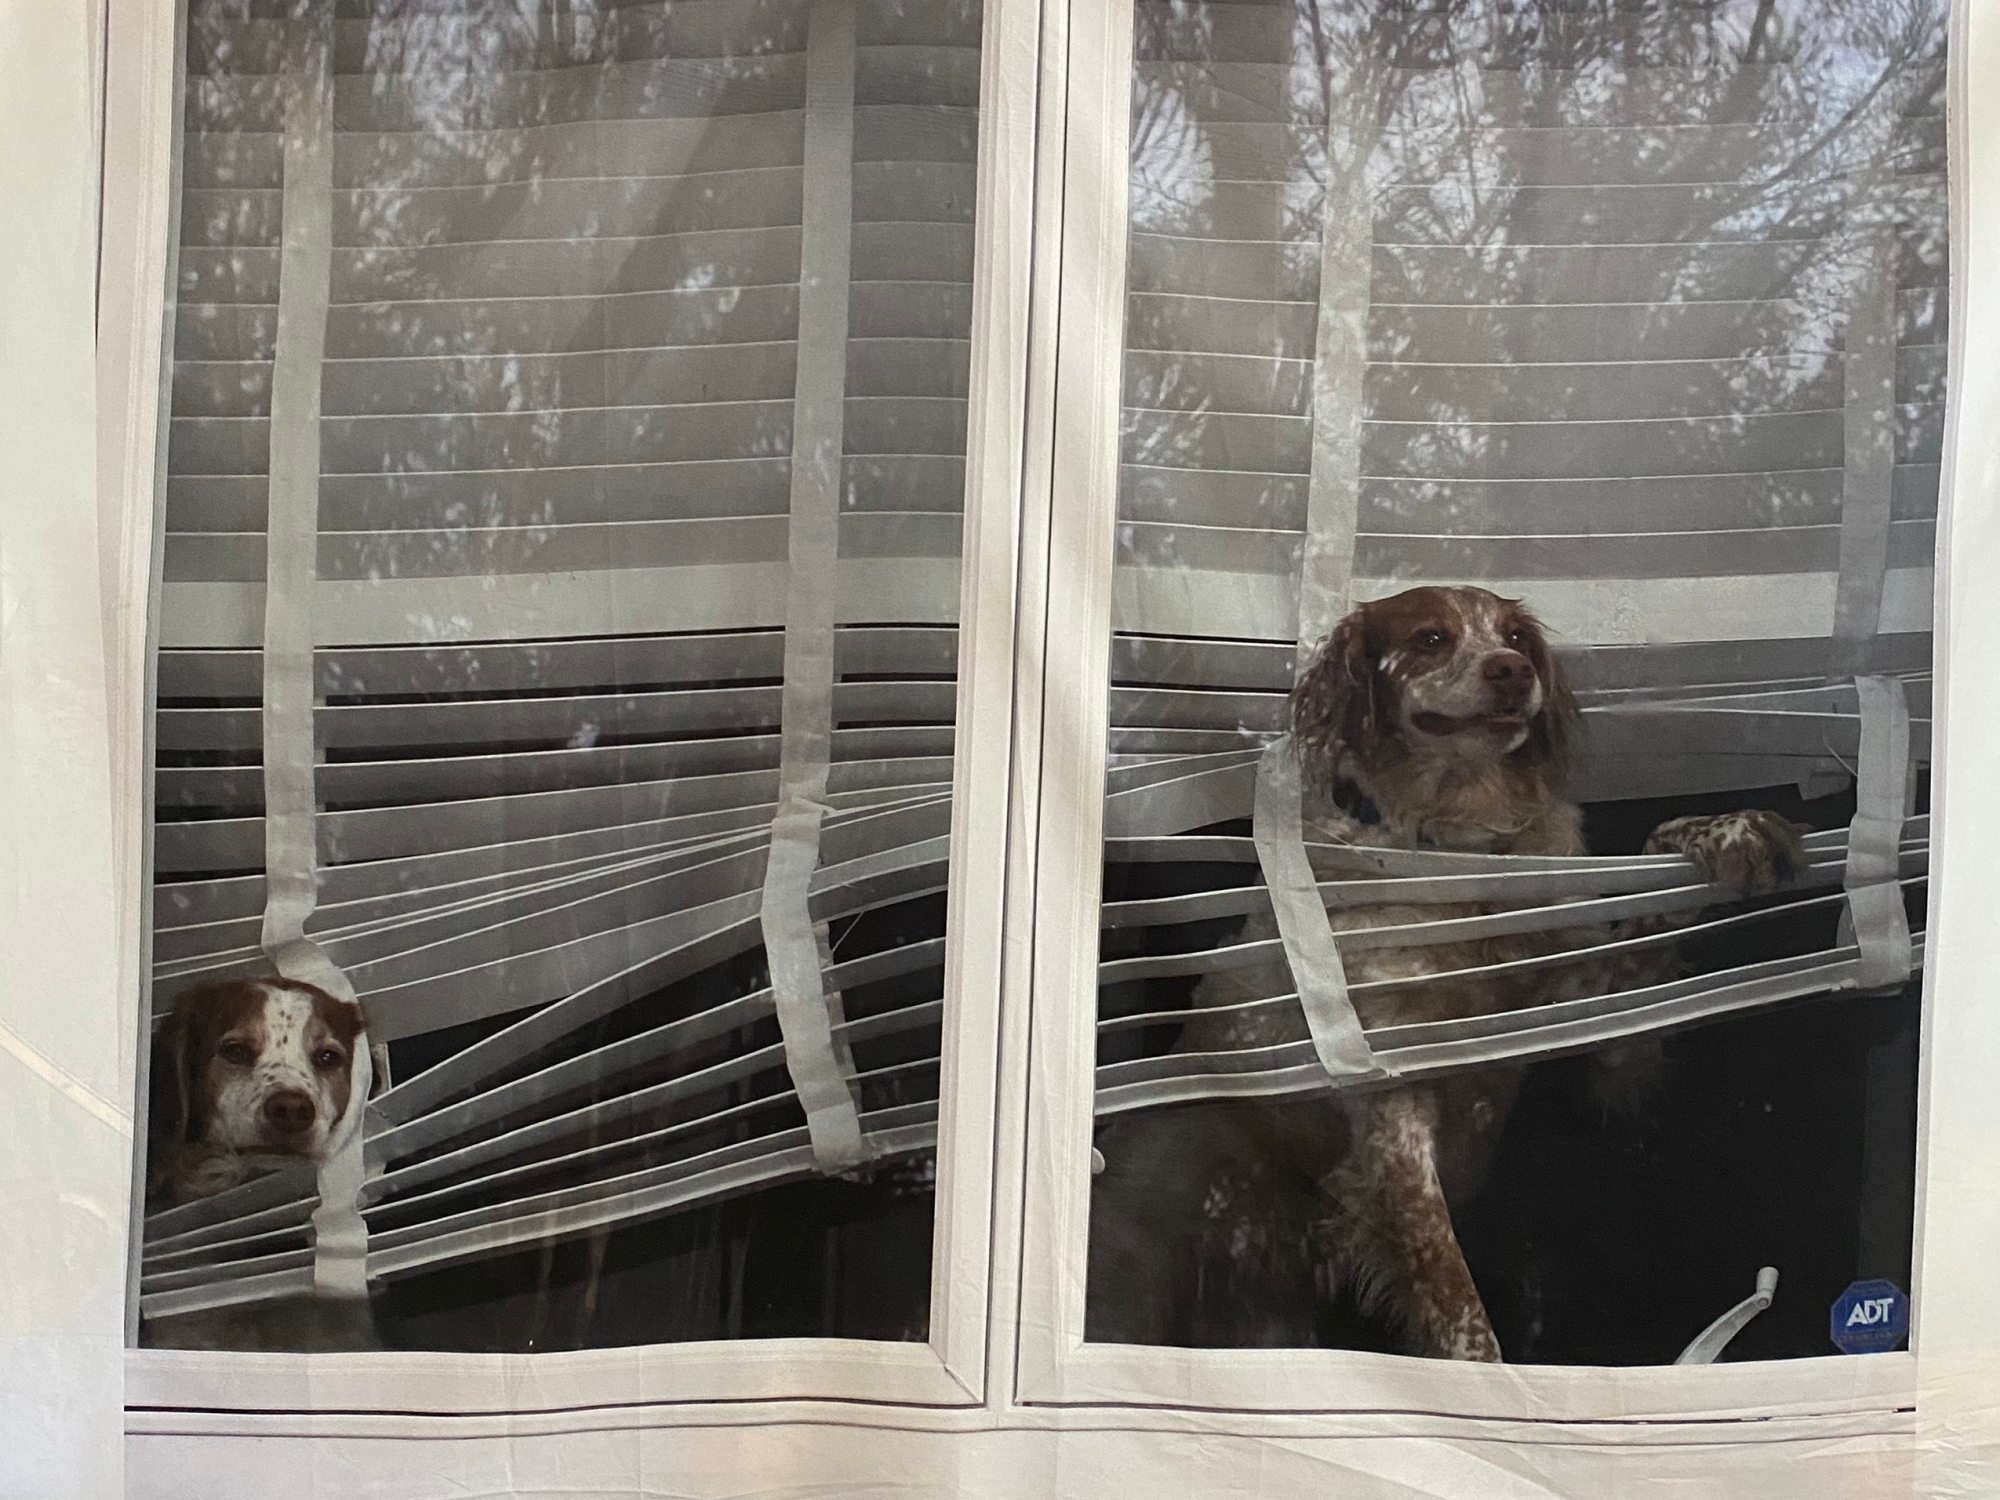 Dogs looking out window entwined in teh blinds